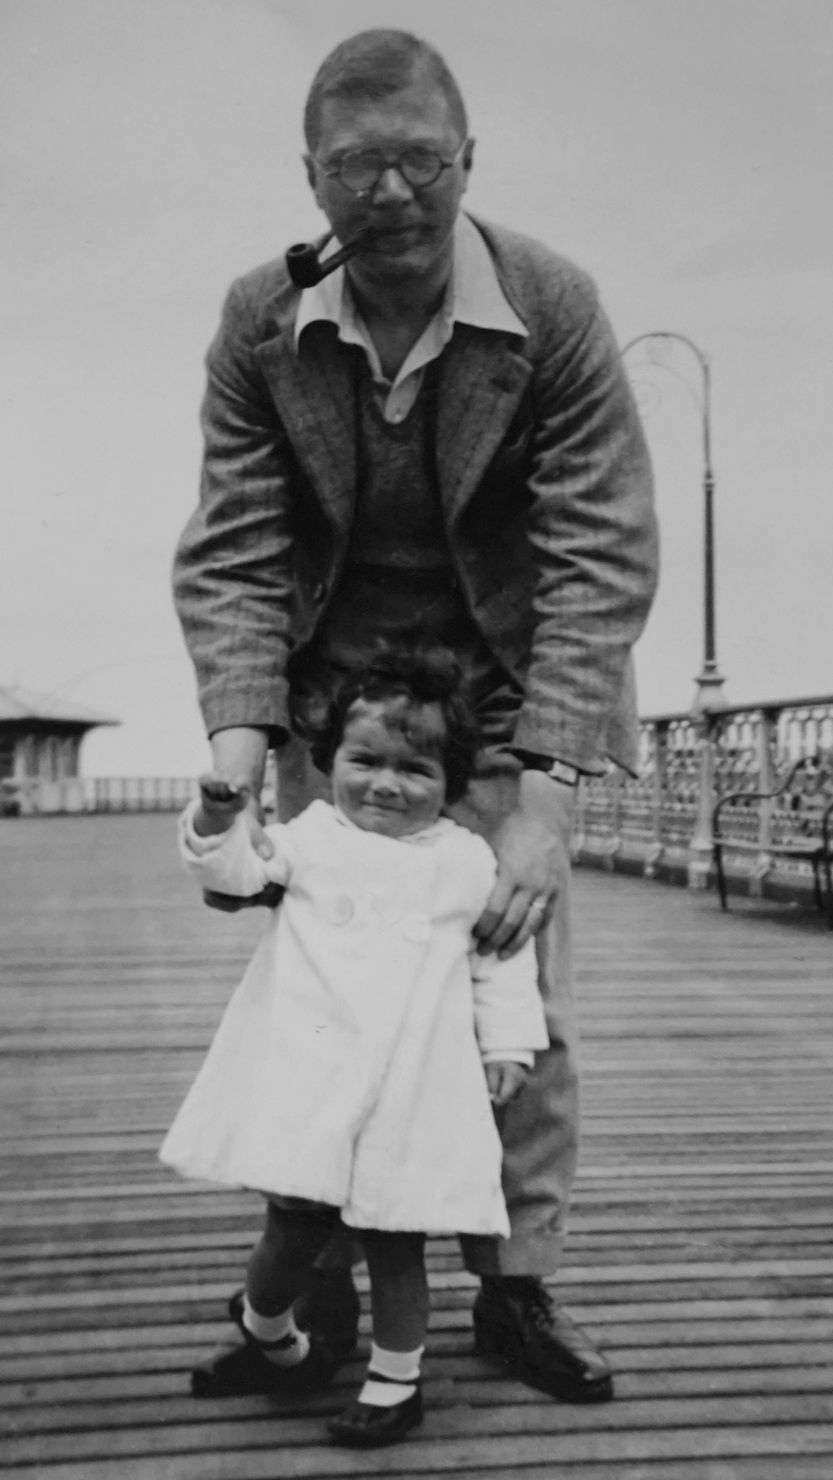 Image of a man standing with a small child